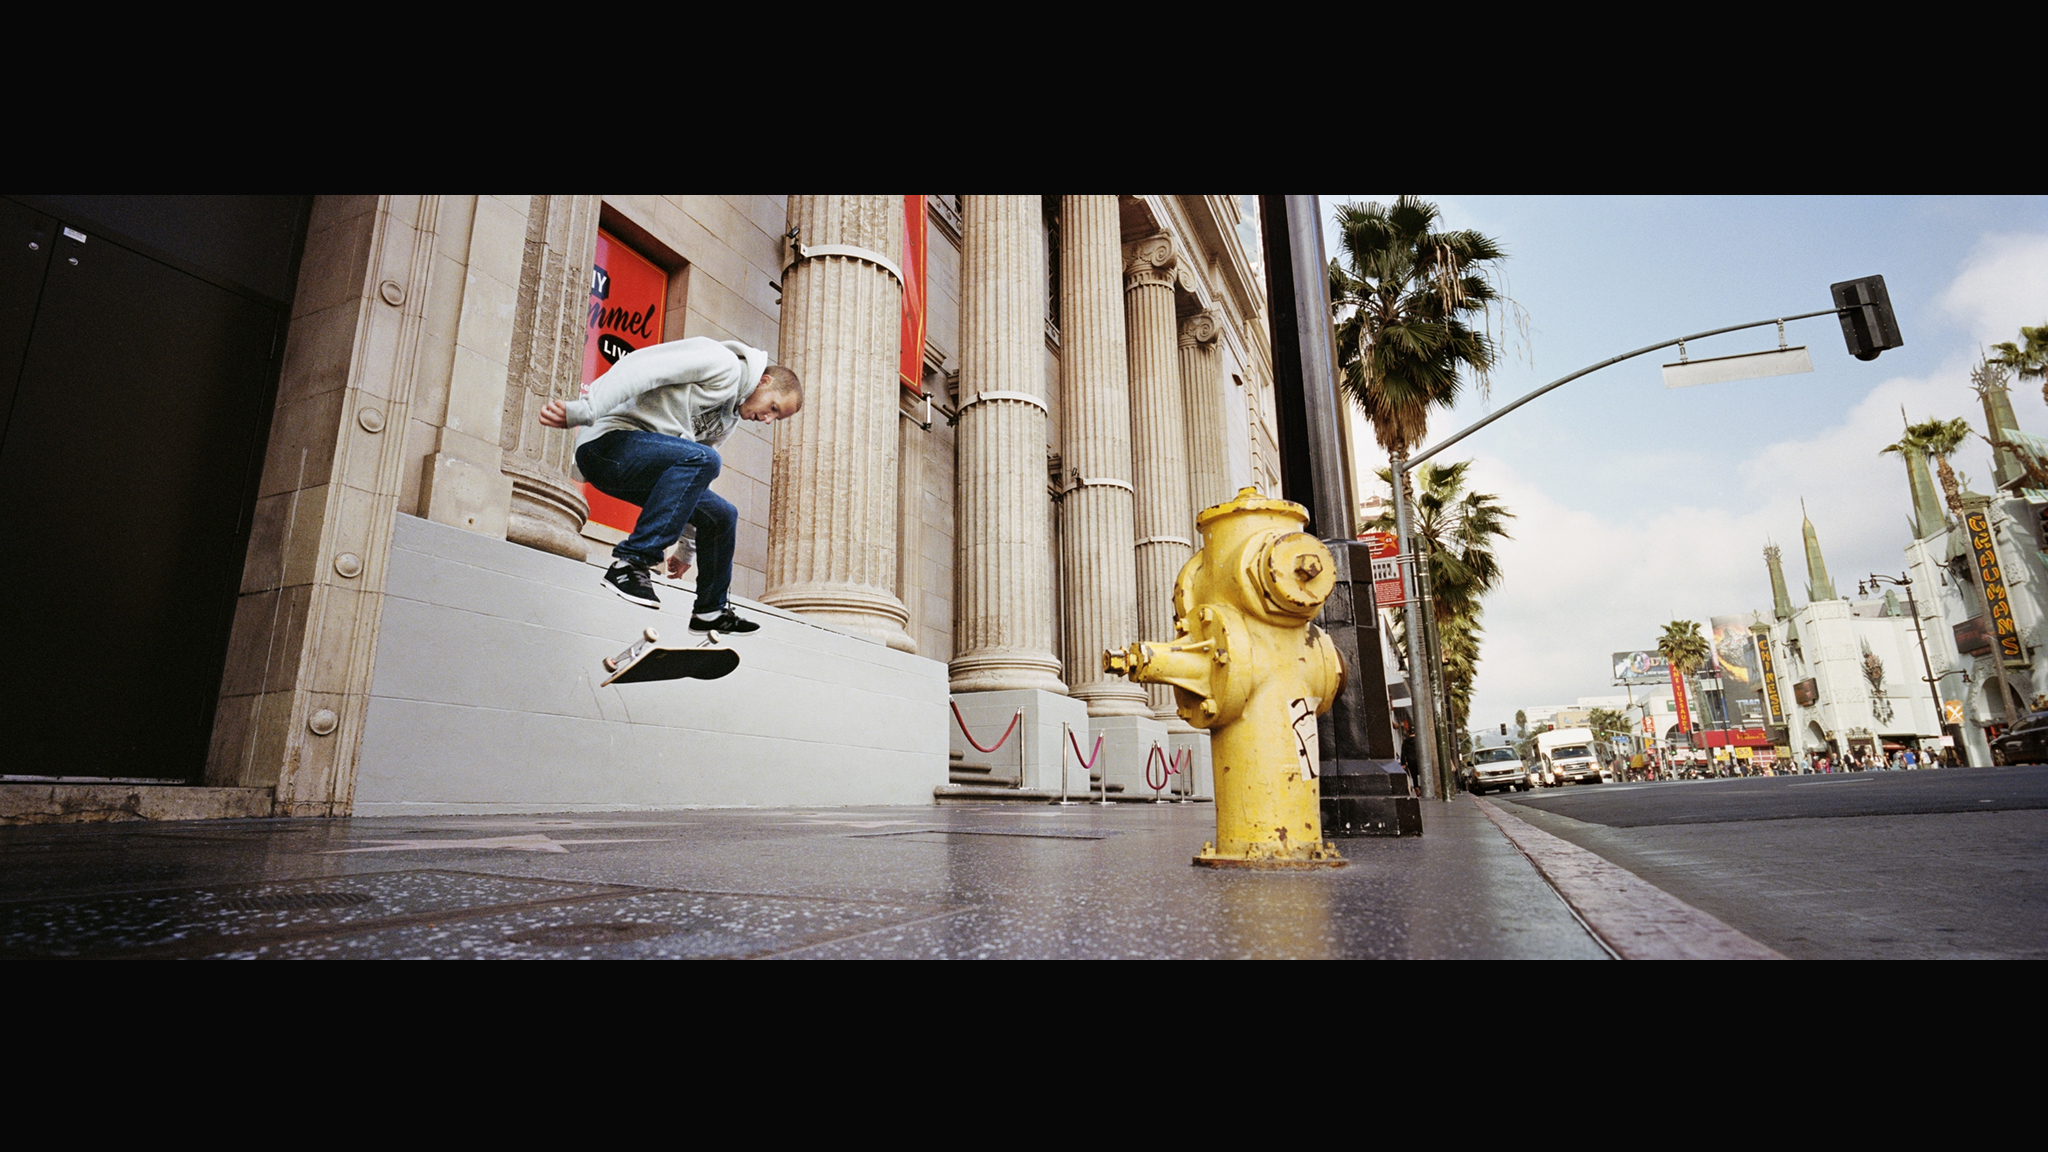 Hollywood kickflip